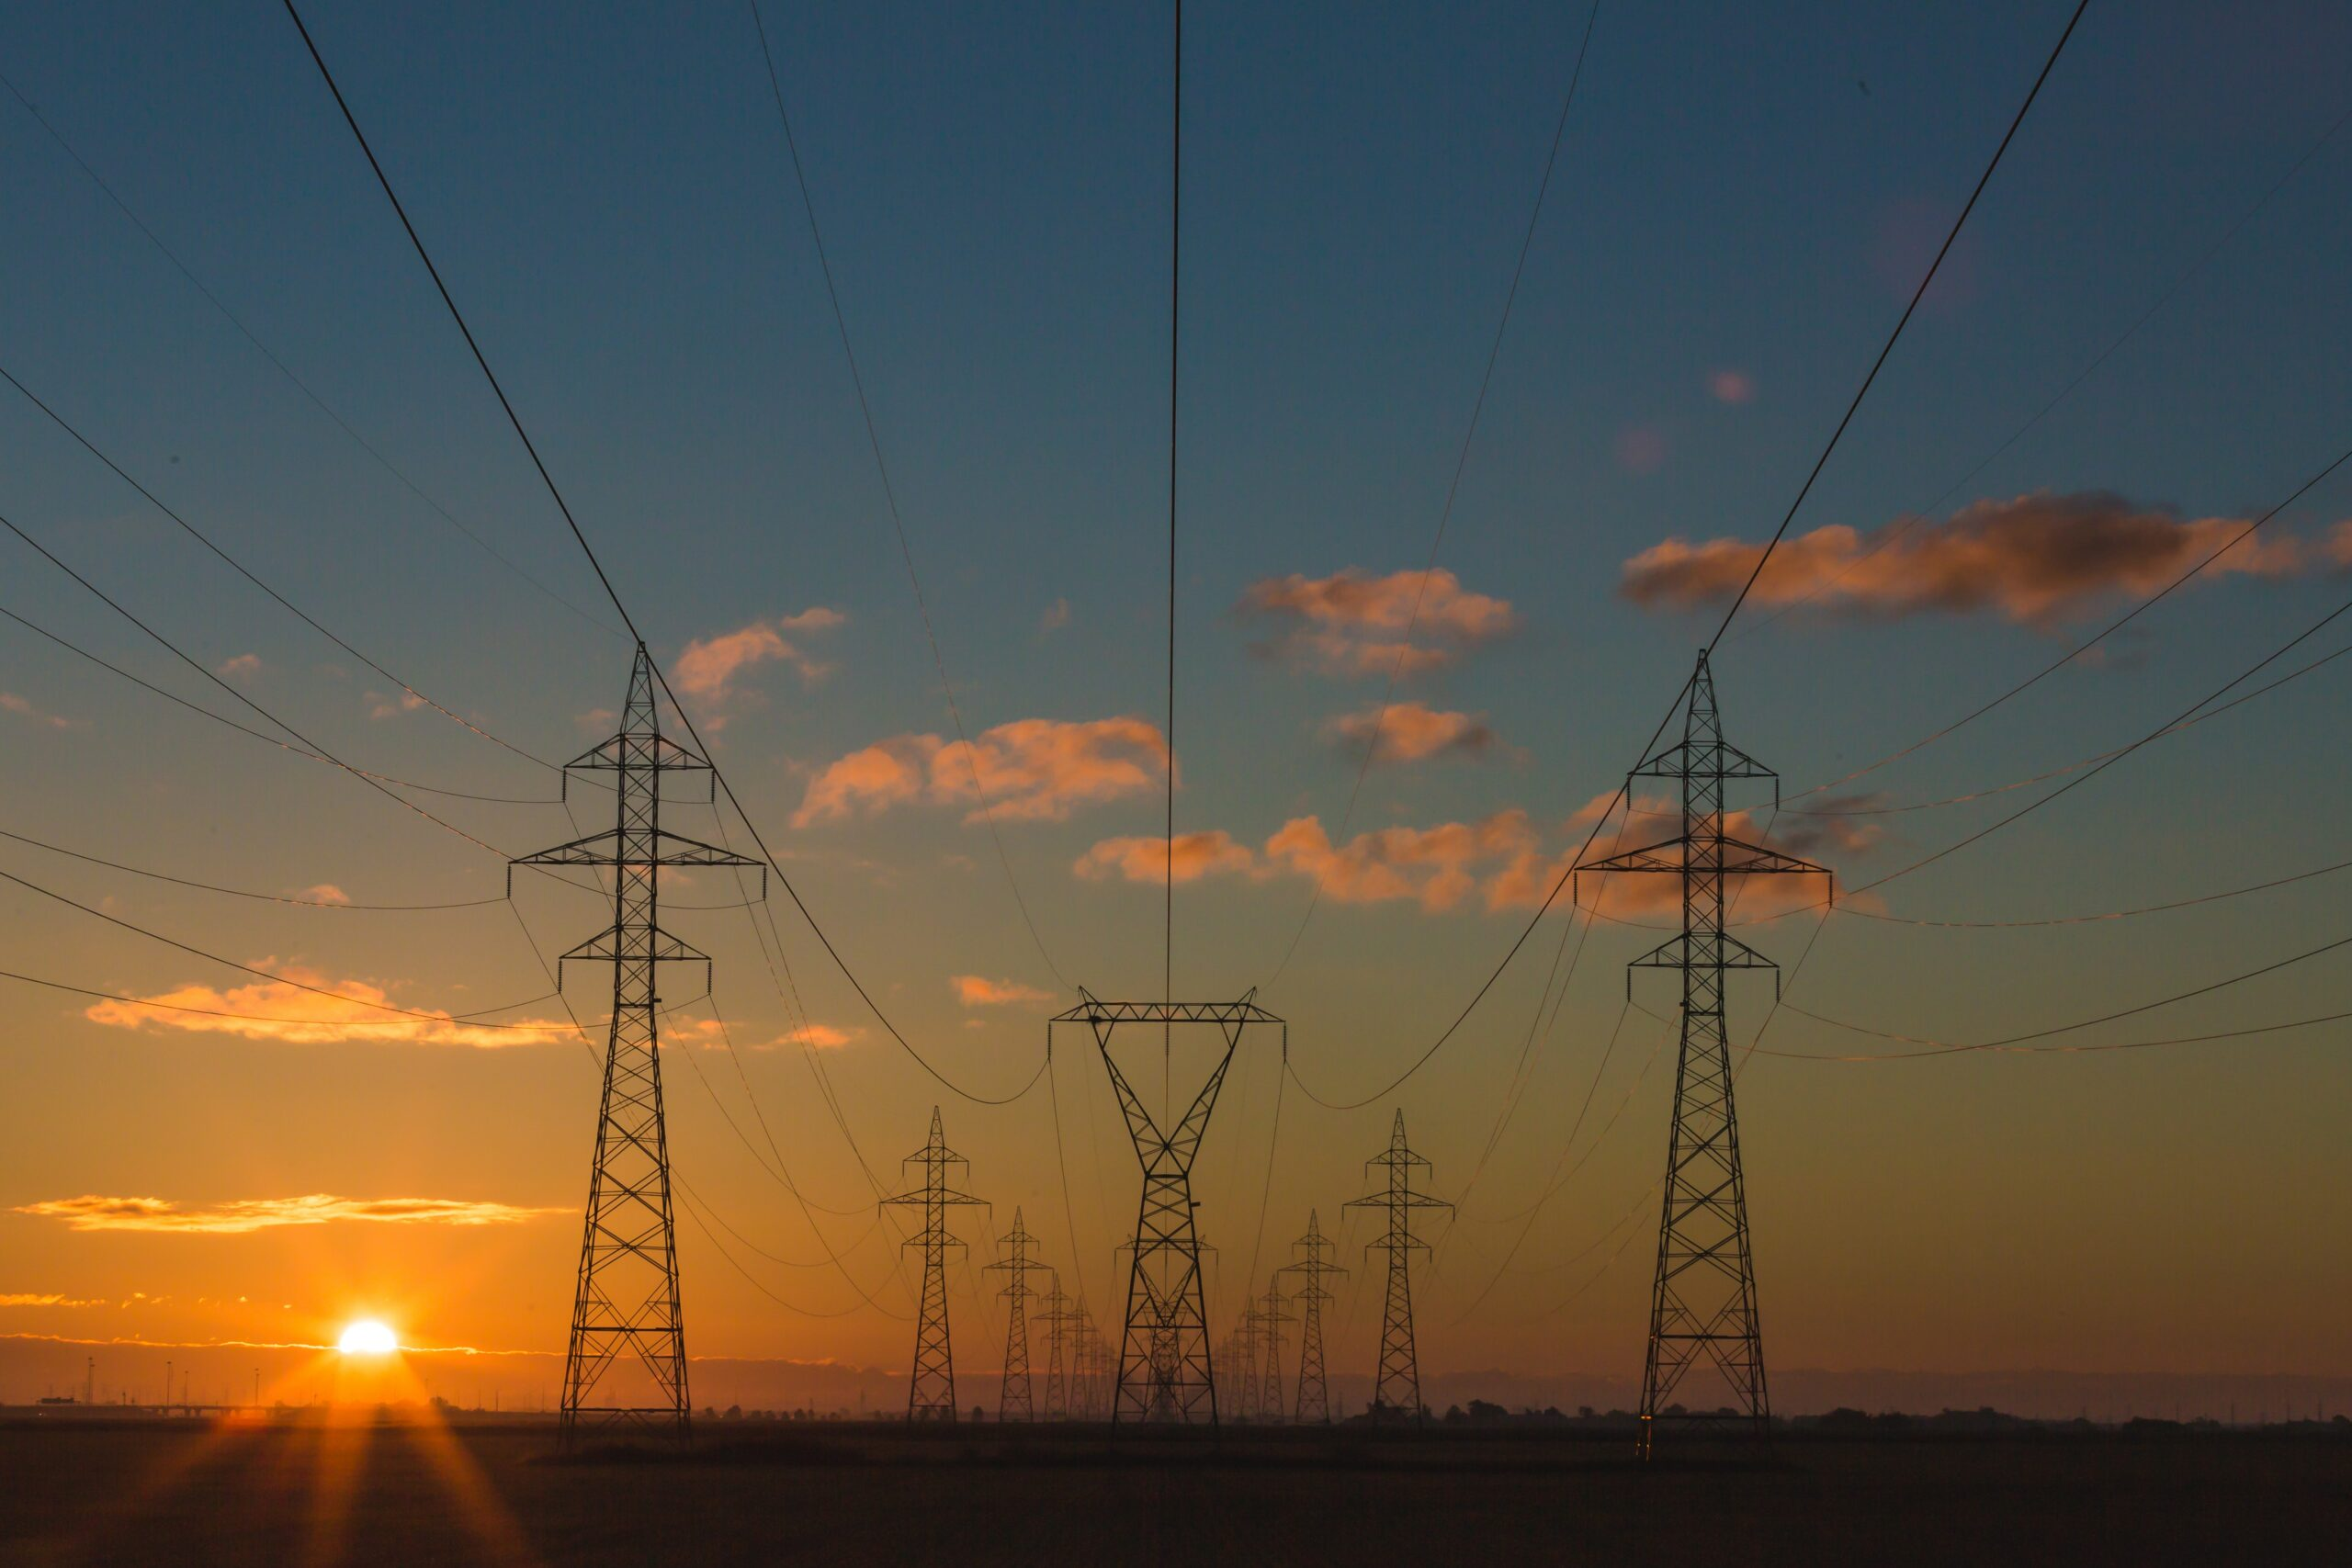 How a foreign country hacks a power grid